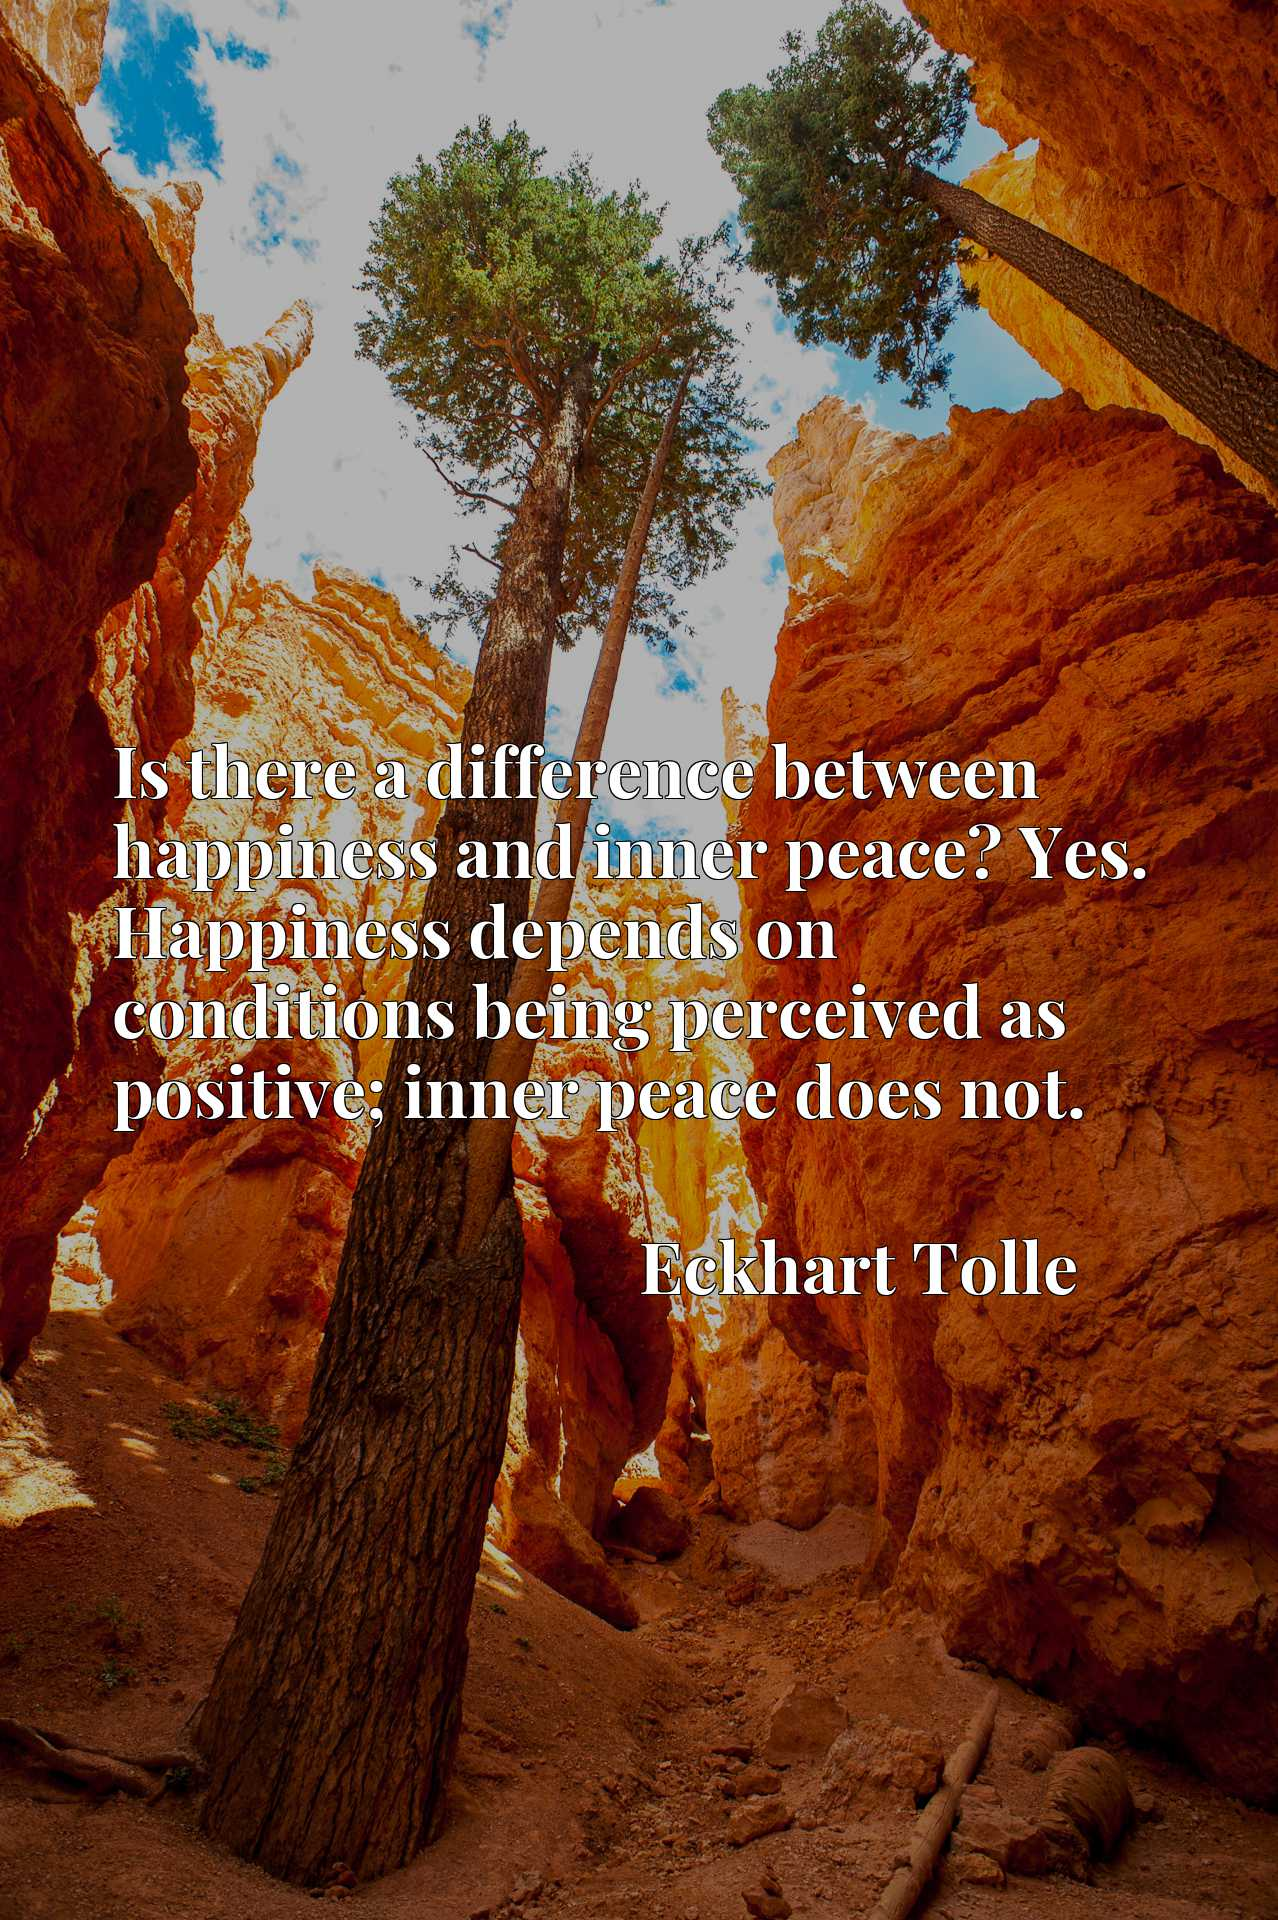 Is there a difference between happiness and inner peace? Yes. Happiness depends on conditions being perceived as positive; inner peace does not.